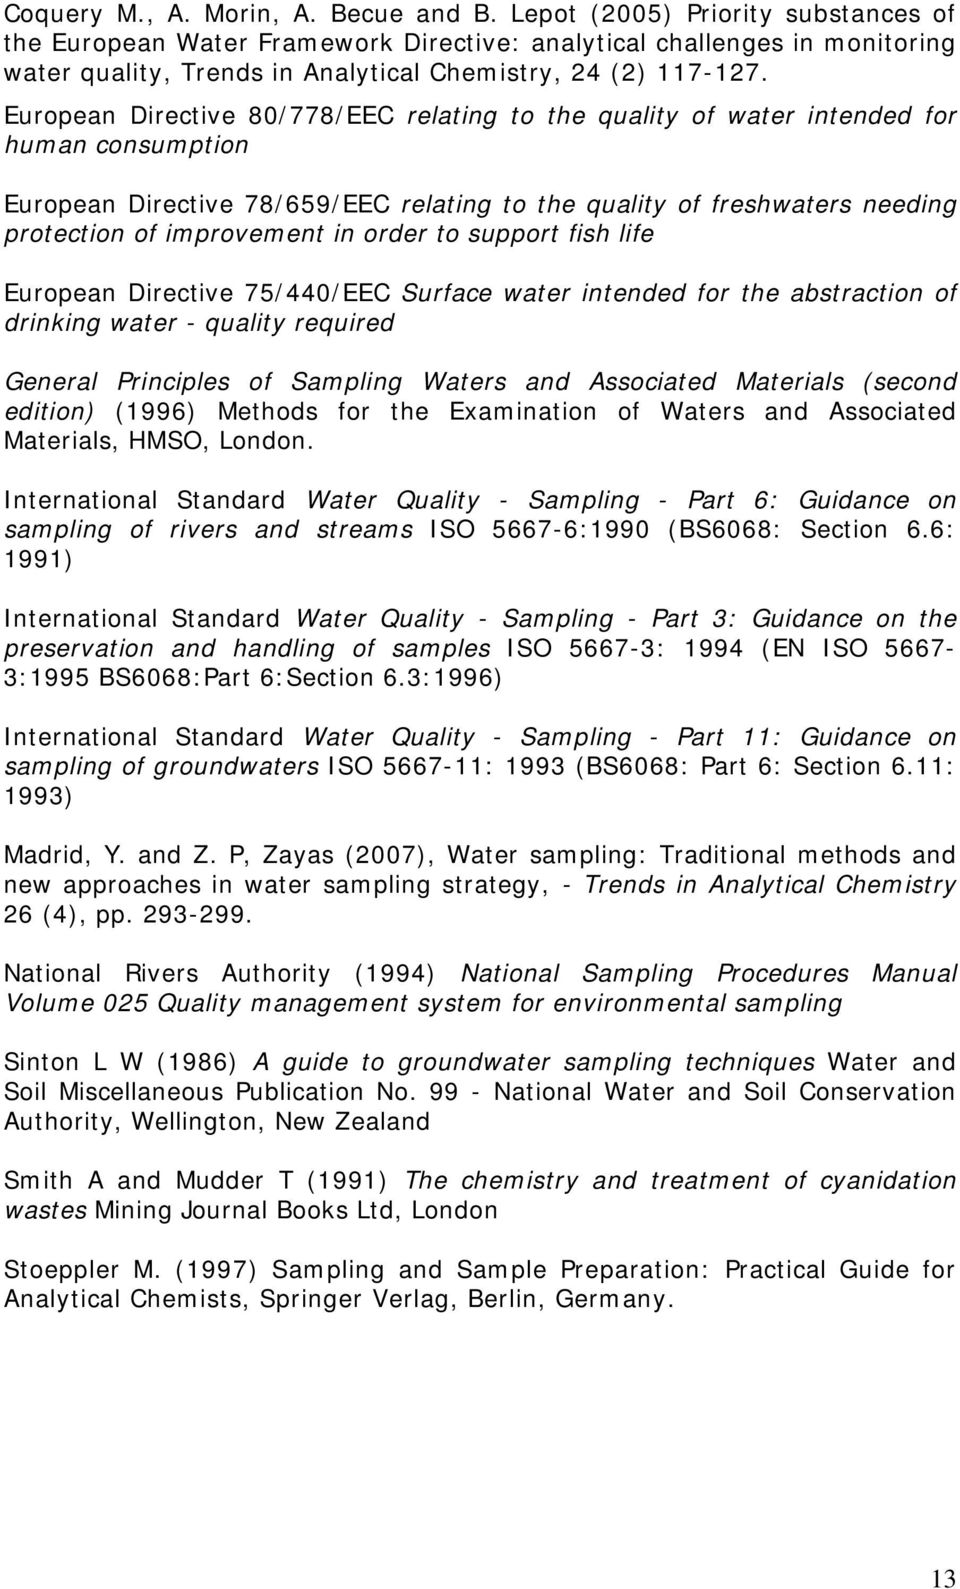 European Directive 80/778/EEC relating to the quality of water intended for human consumption European Directive 78/659/EEC relating to the quality of freshwaters needing protection of improvement in